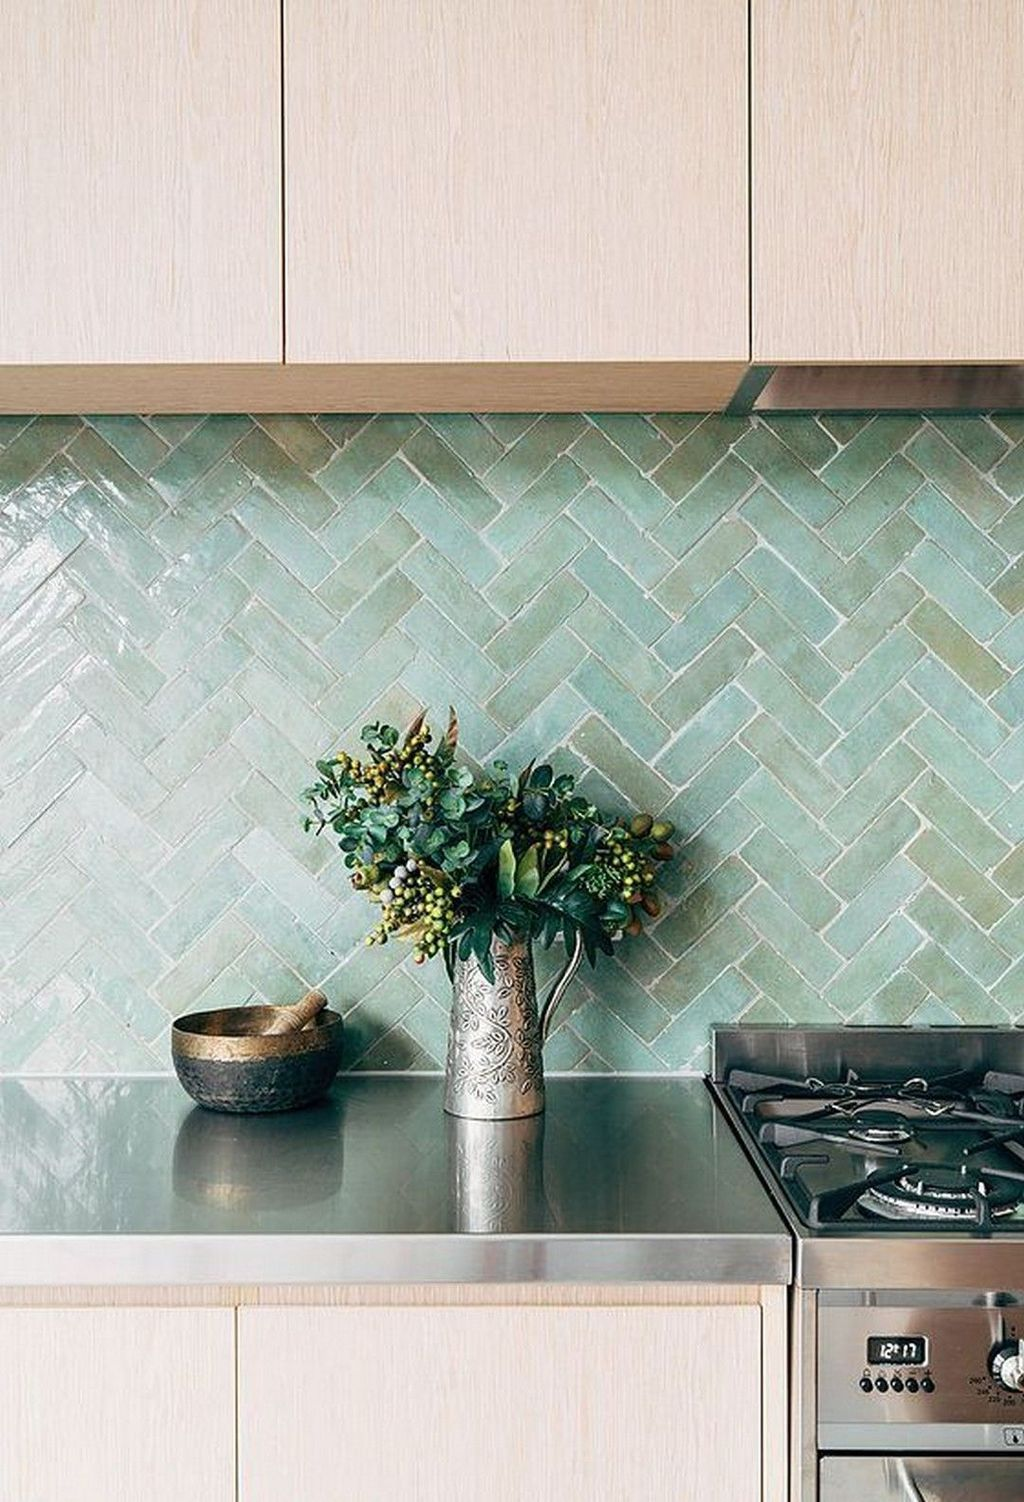 38 Awesome Creative Kitchen Backsplash Ideas Kitchen Splashback